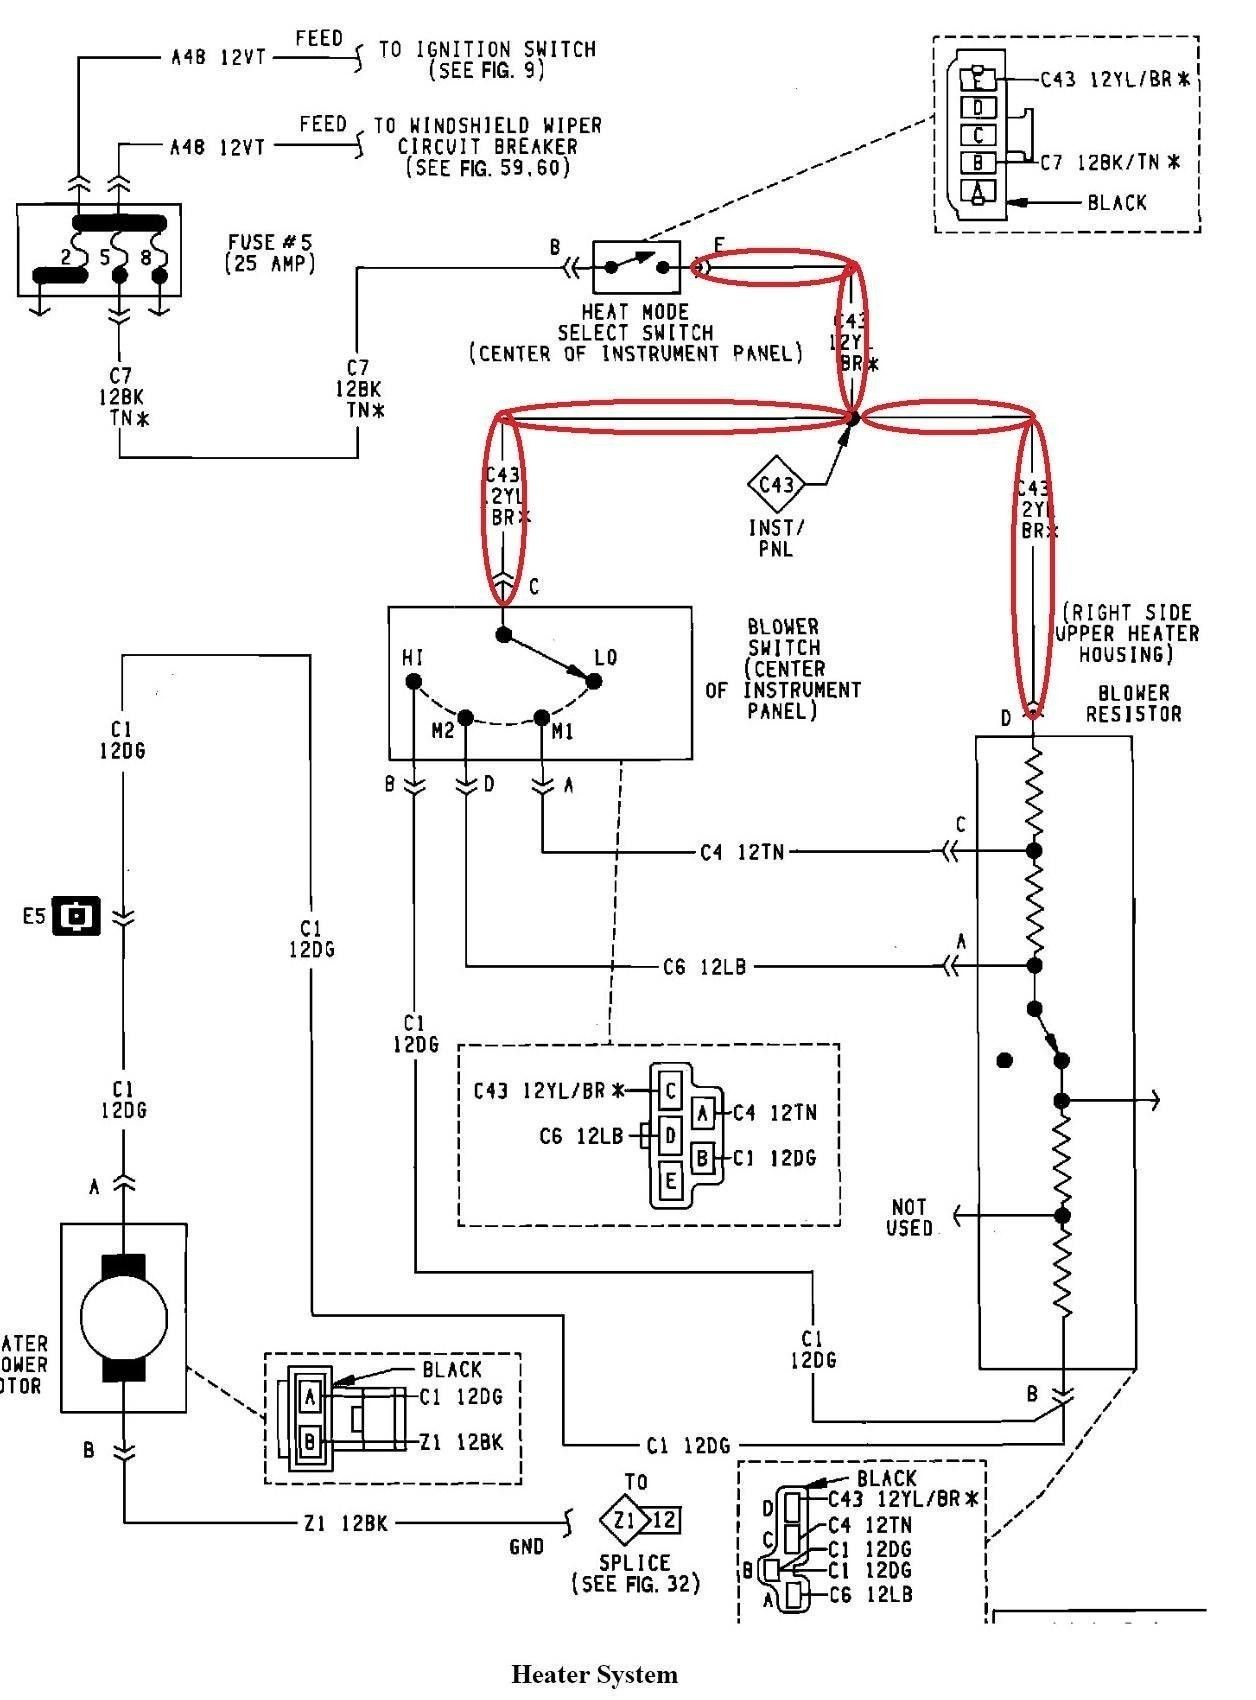 New Wiring Diagram For 2006 Club Car Precedent 48 Volt Diagram Diagramtemplate Diagramsample Mitsubishi Diamante